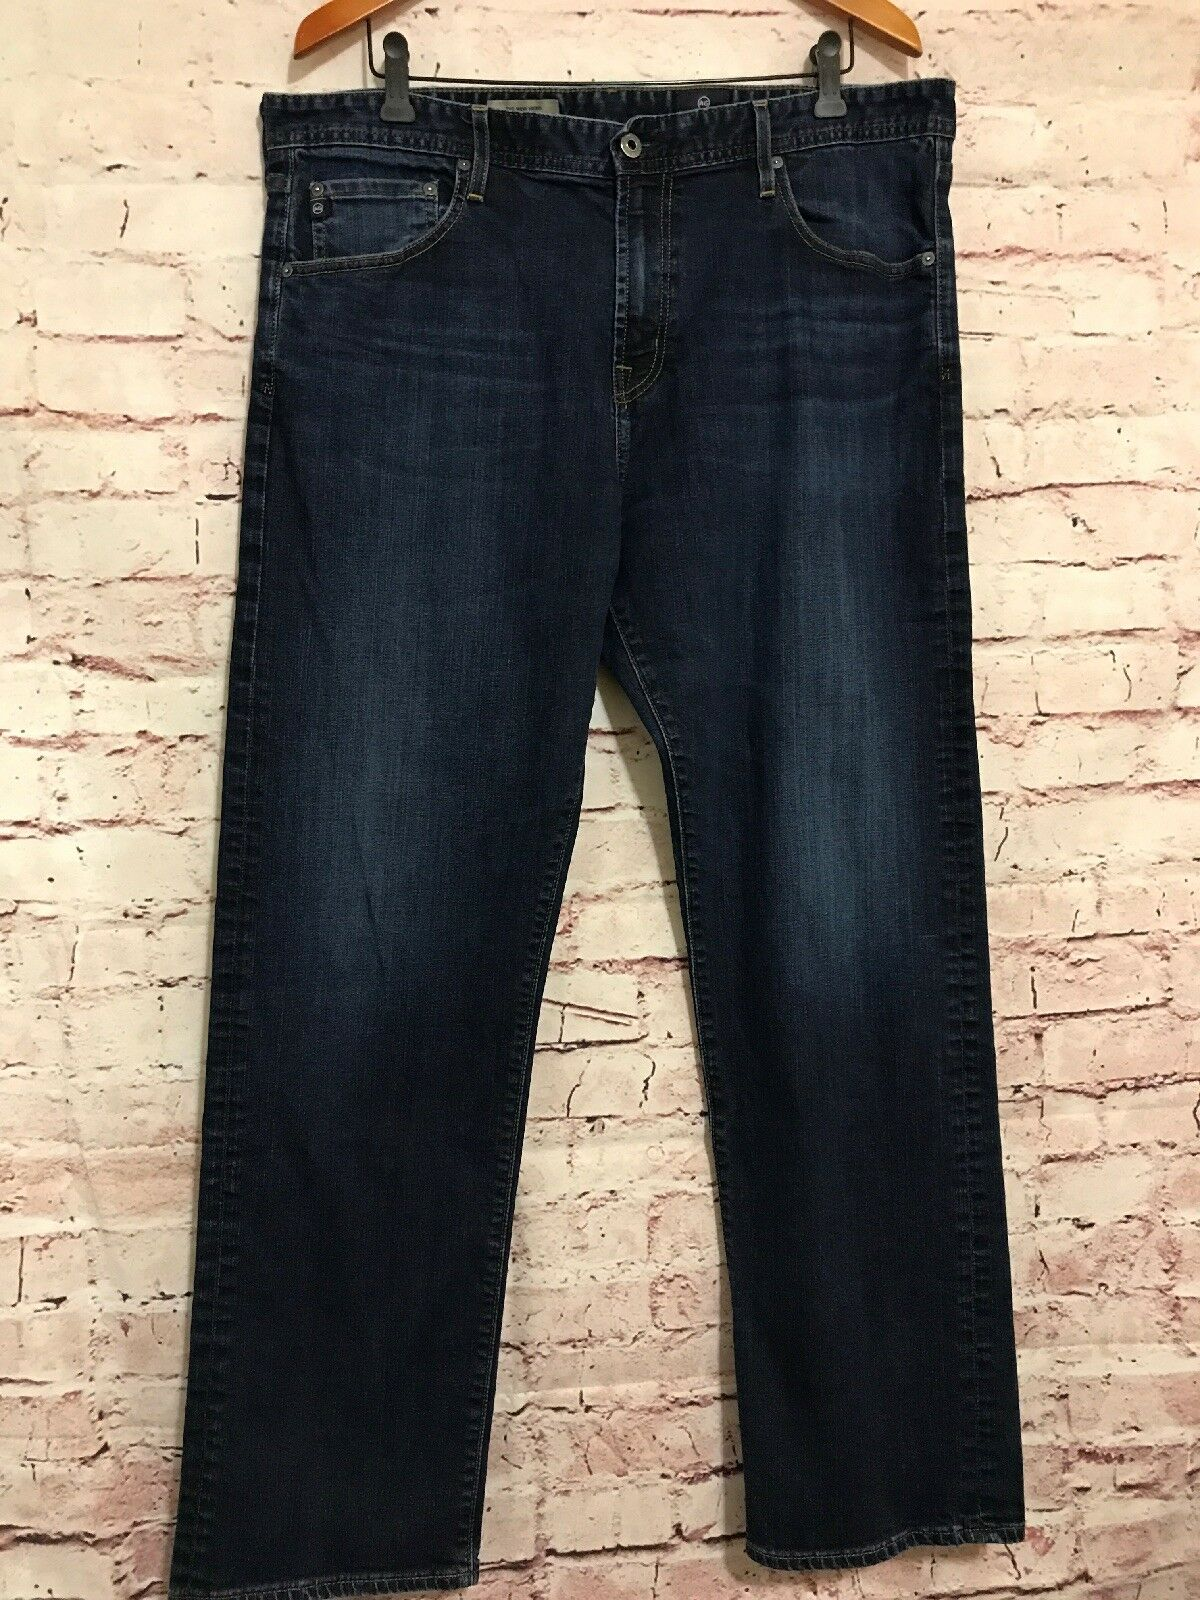 4f3a5c55 Ag Mens Jeans Dark Wash bluee The New Hero Relaxed Fit 38x31 C54 ...